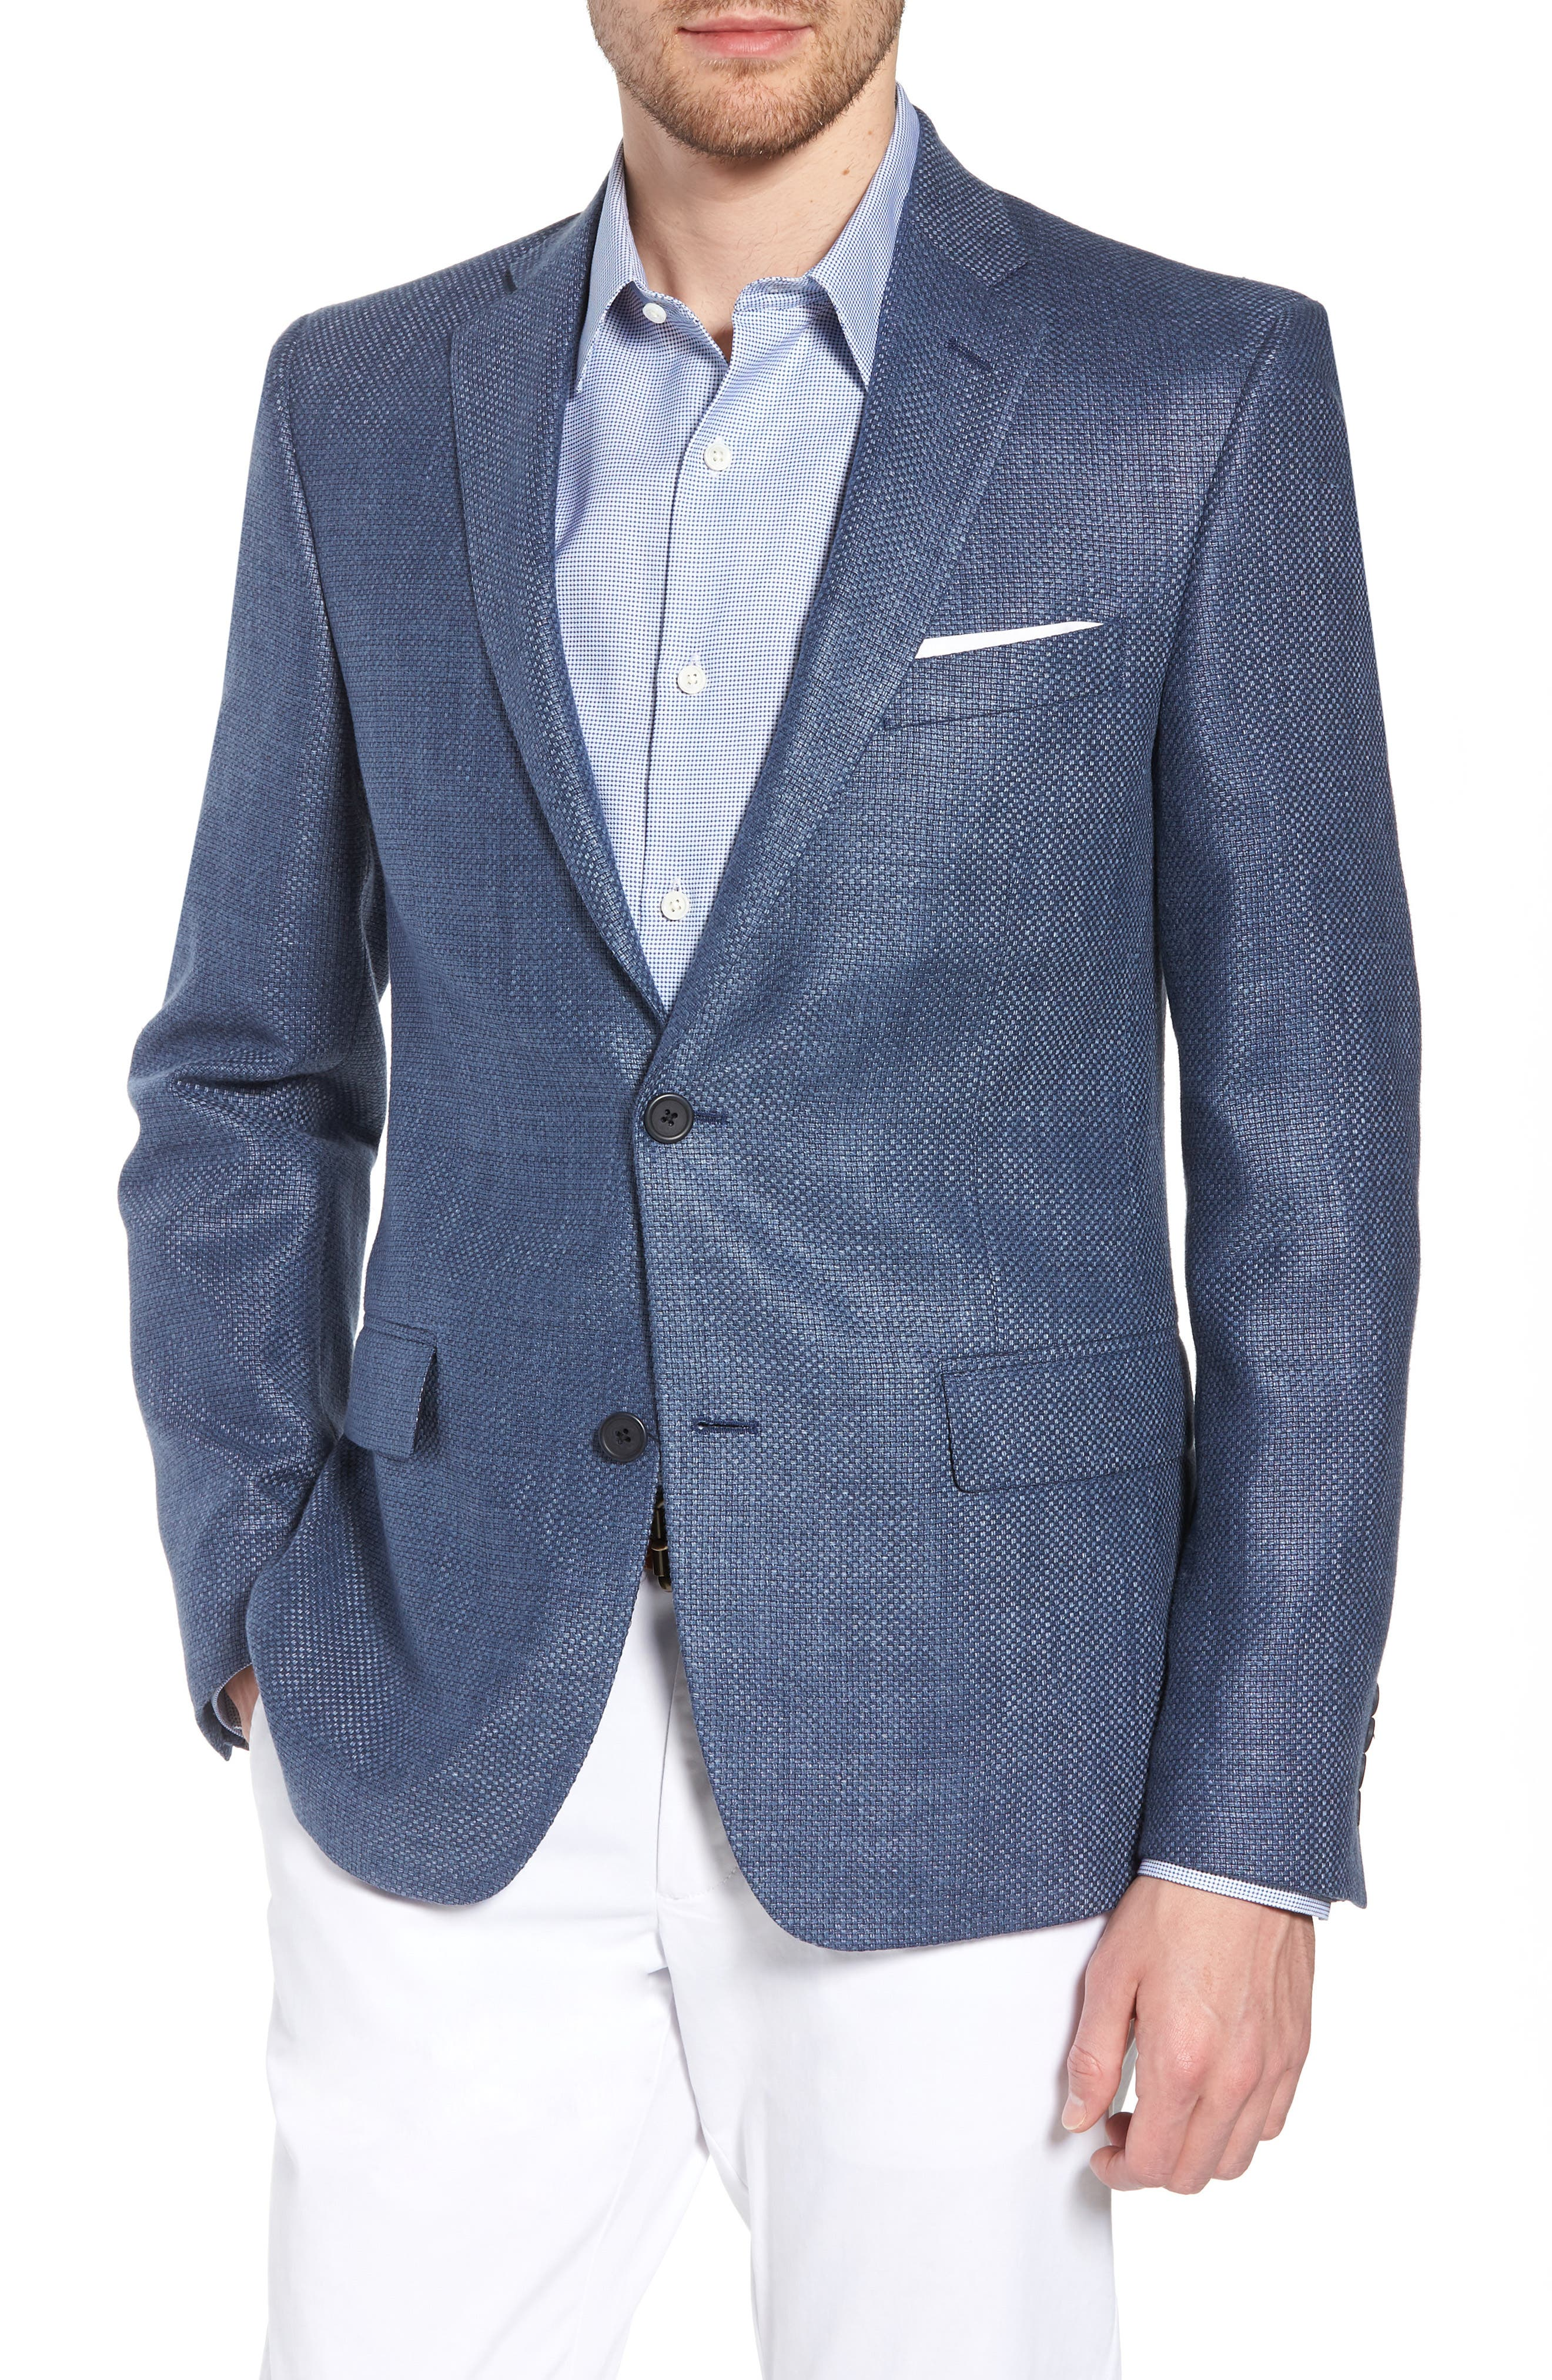 Nordstrom Men's Shop Trim Fit Wool & Linen Blazer